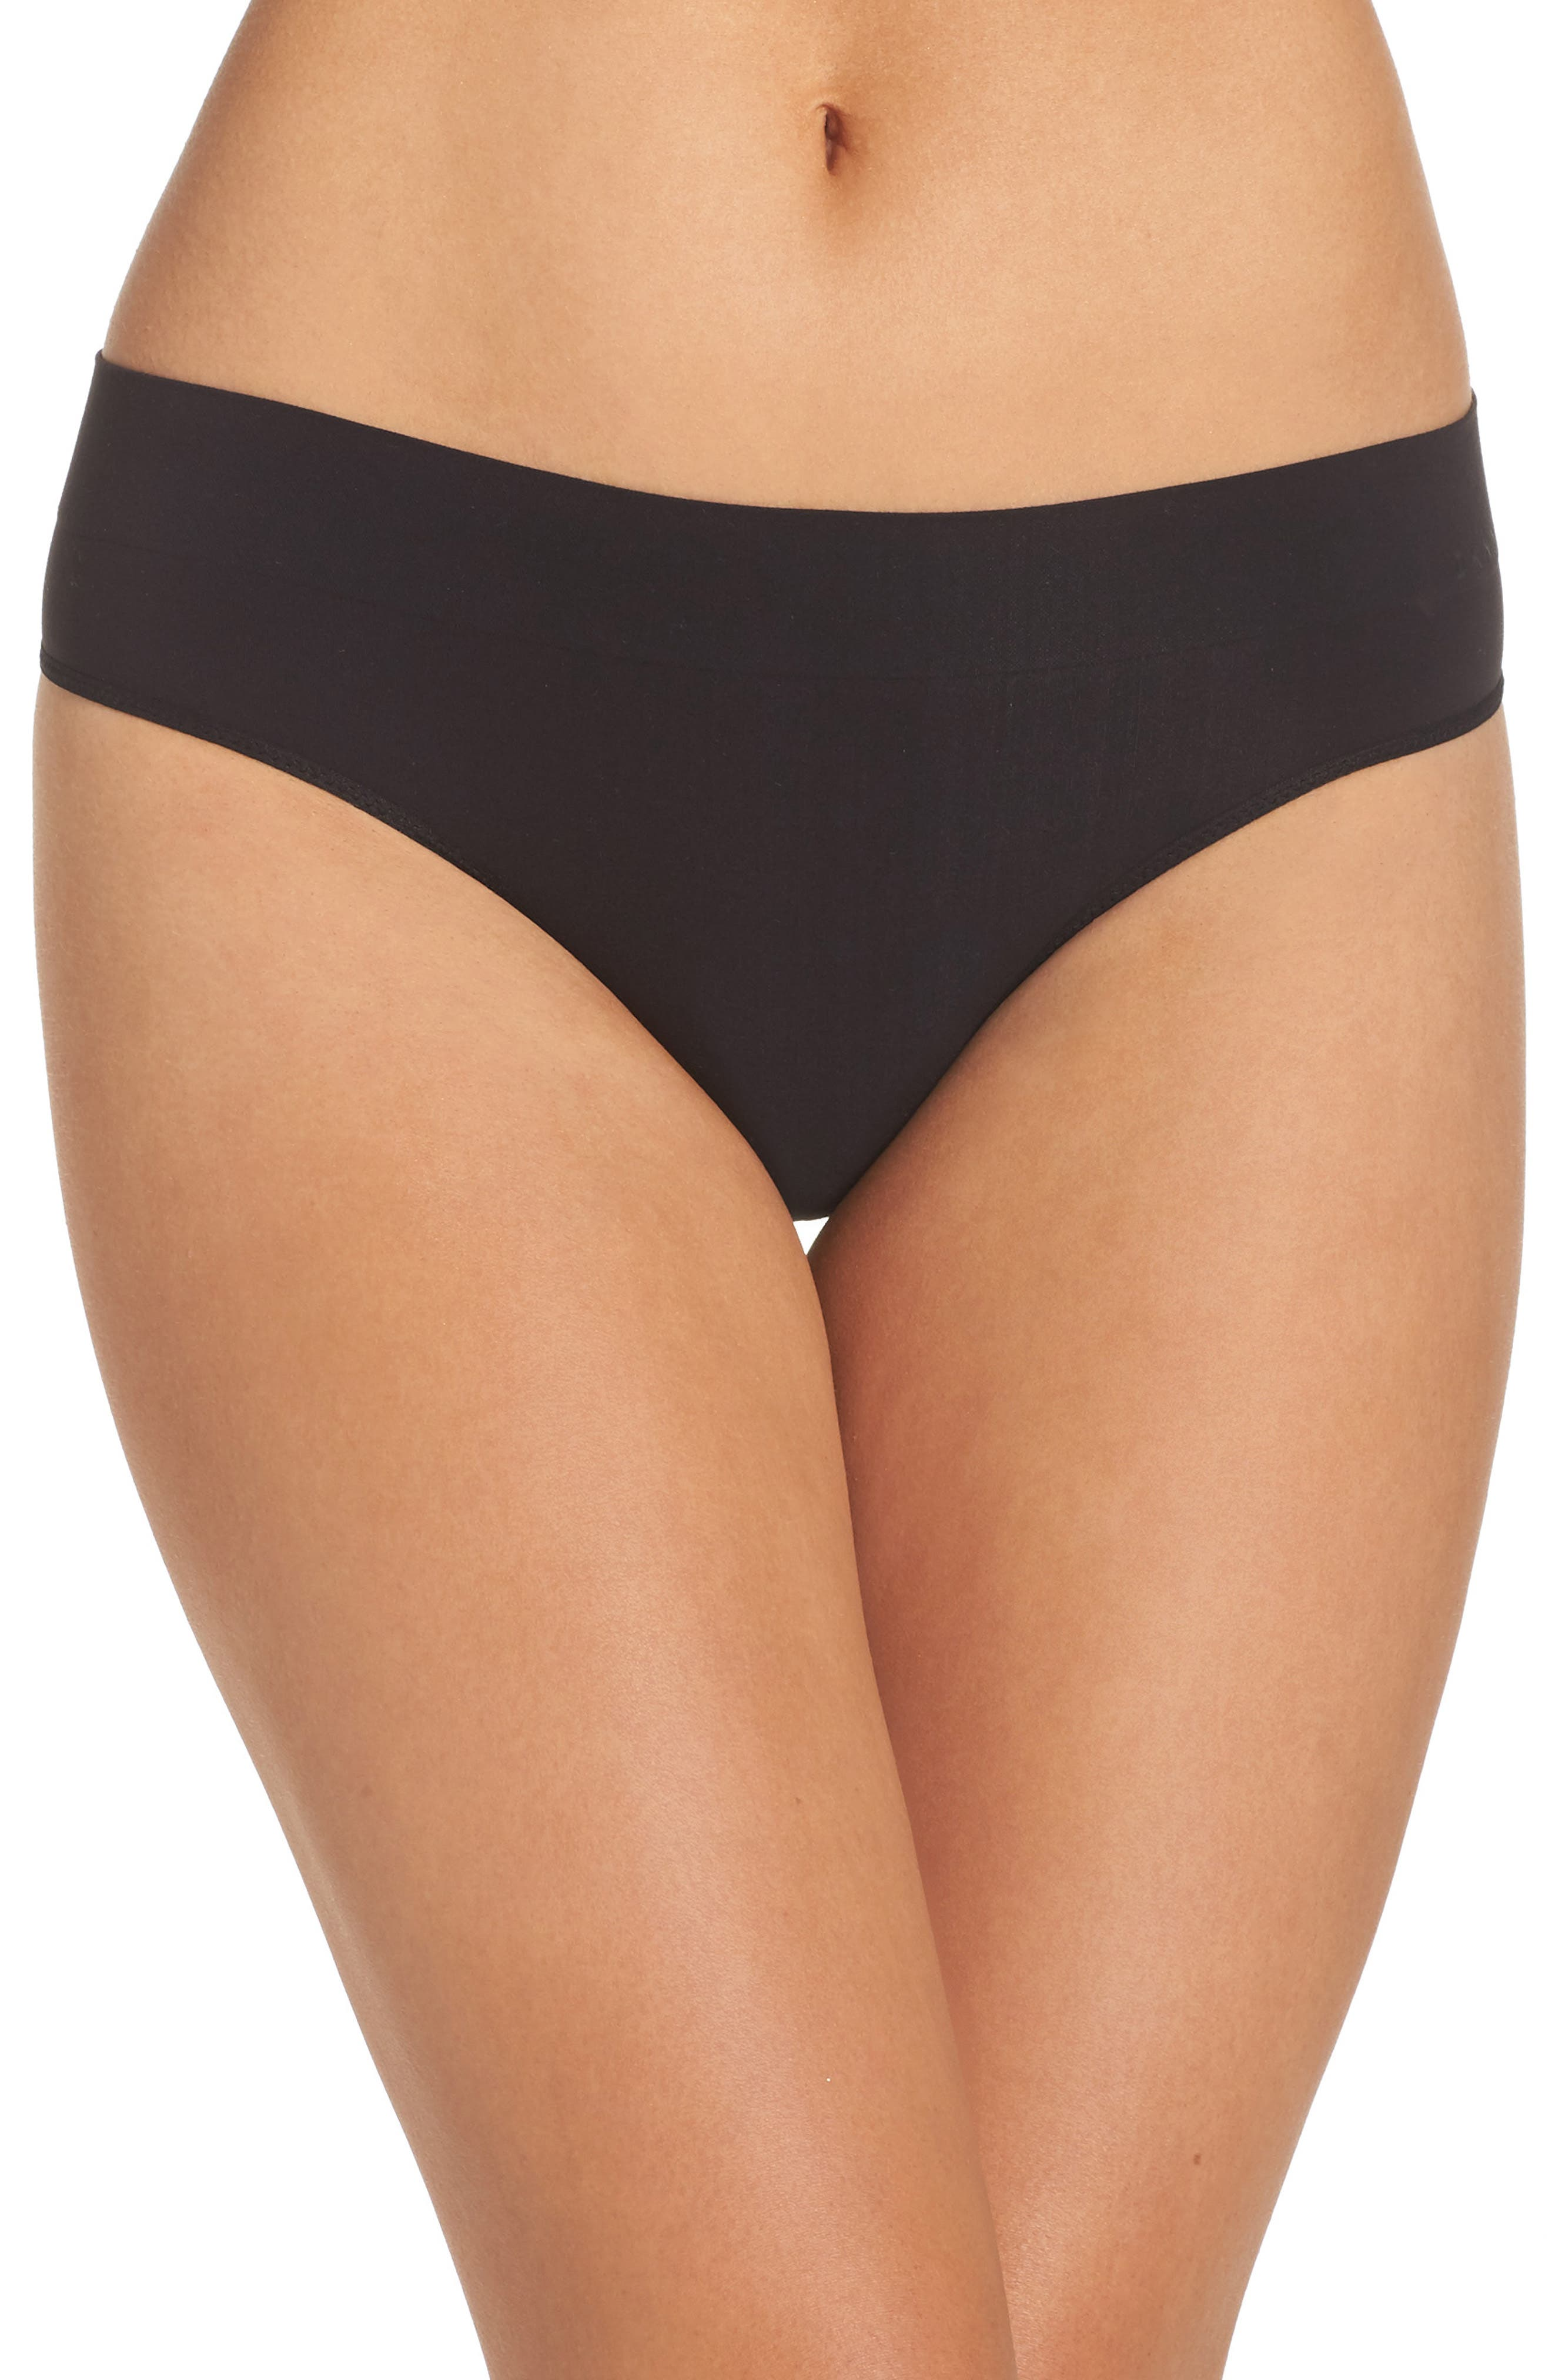 LiteWear Seamless Thong,                         Main,                         color, Black